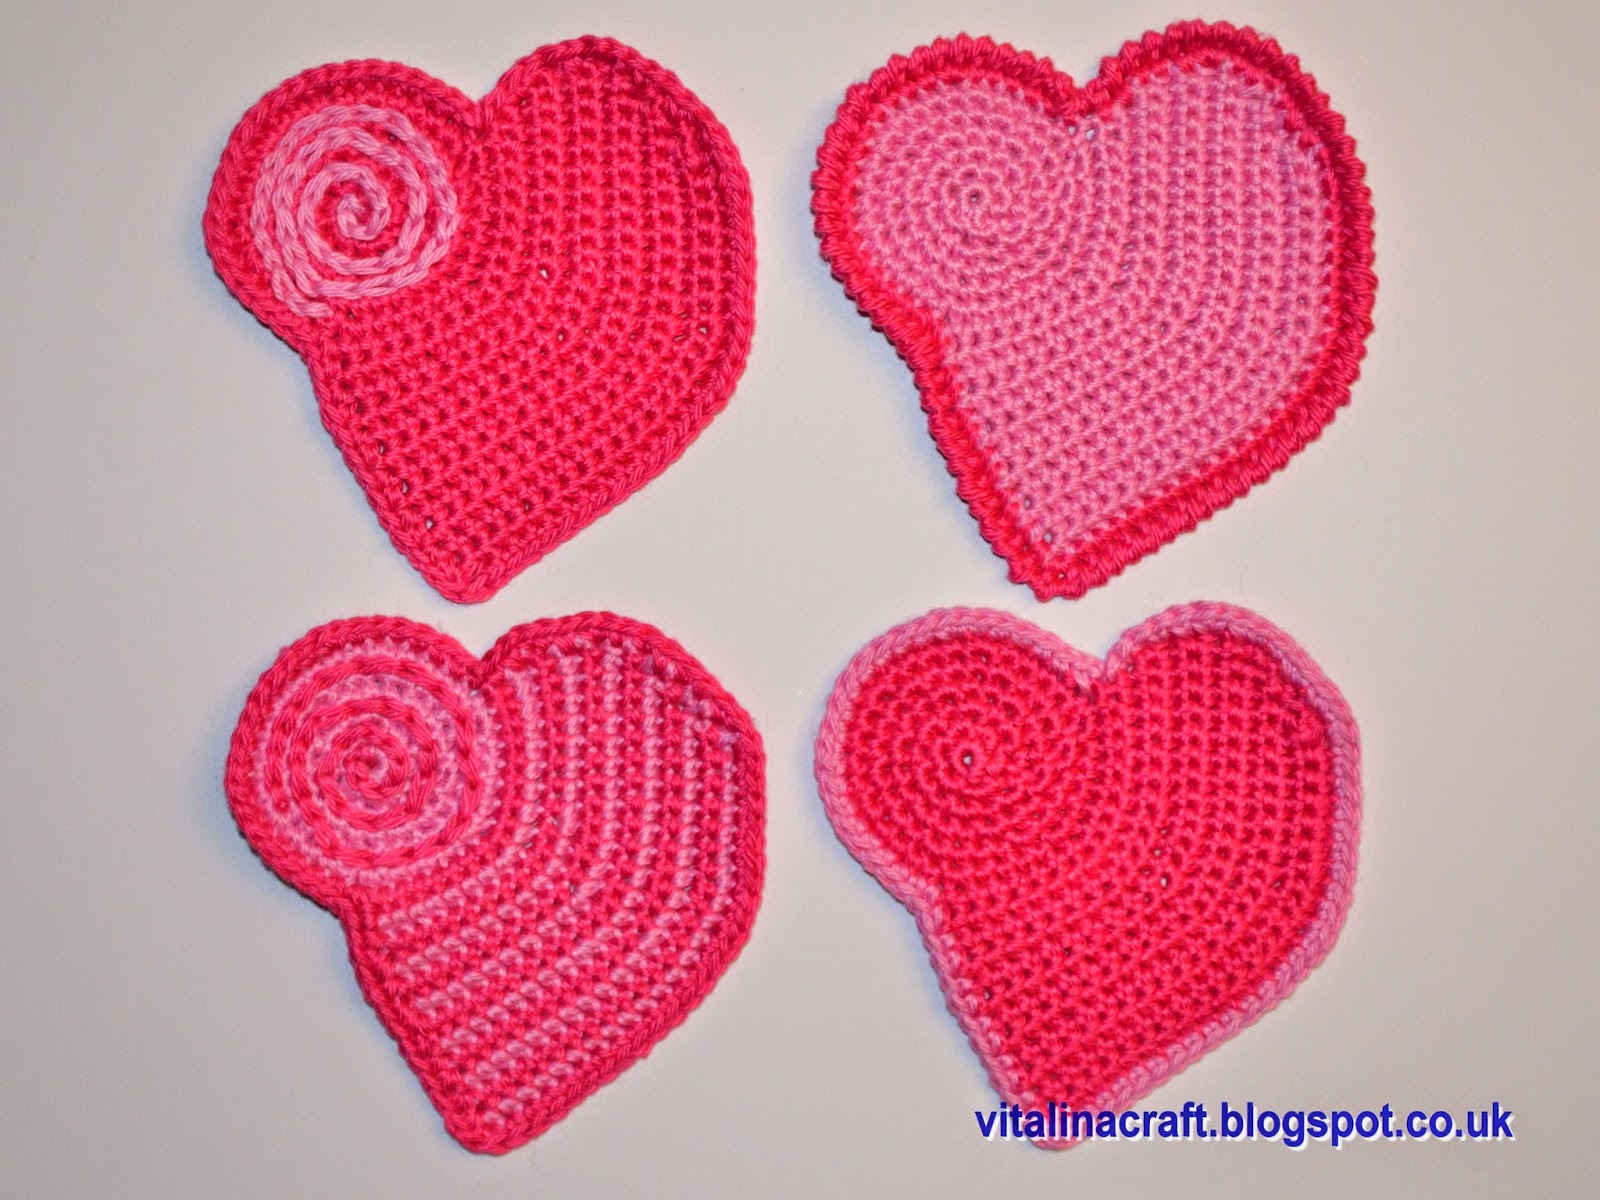 Crocheting For Valentines Day : Crochet coasters for St Valentine Day ViTalina Craft